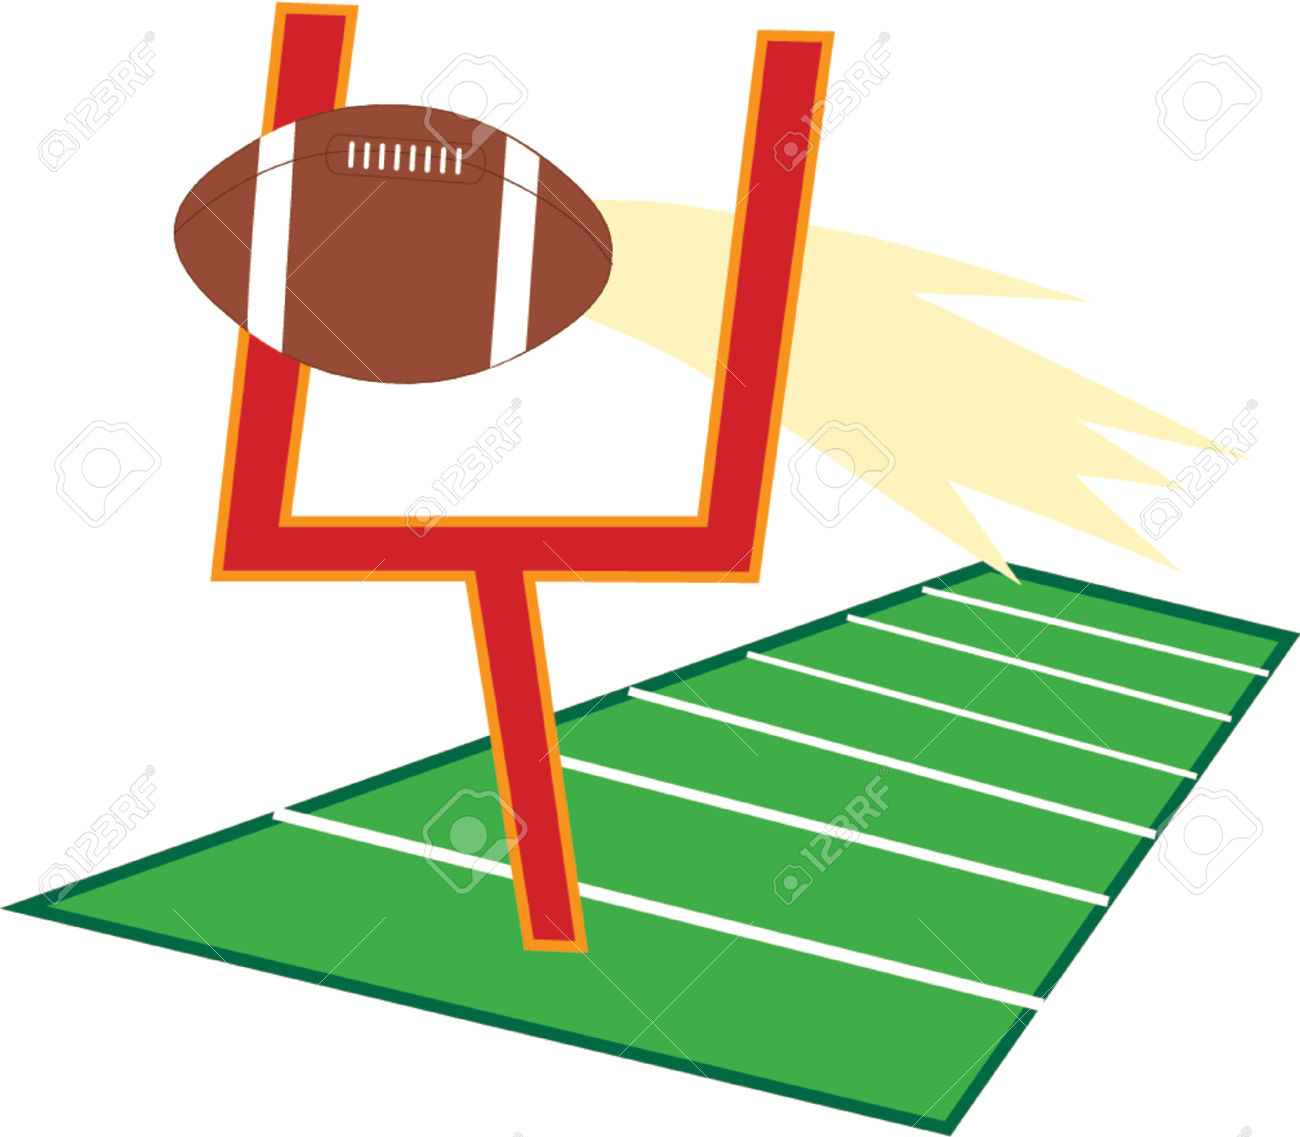 fottbal clipart goal post